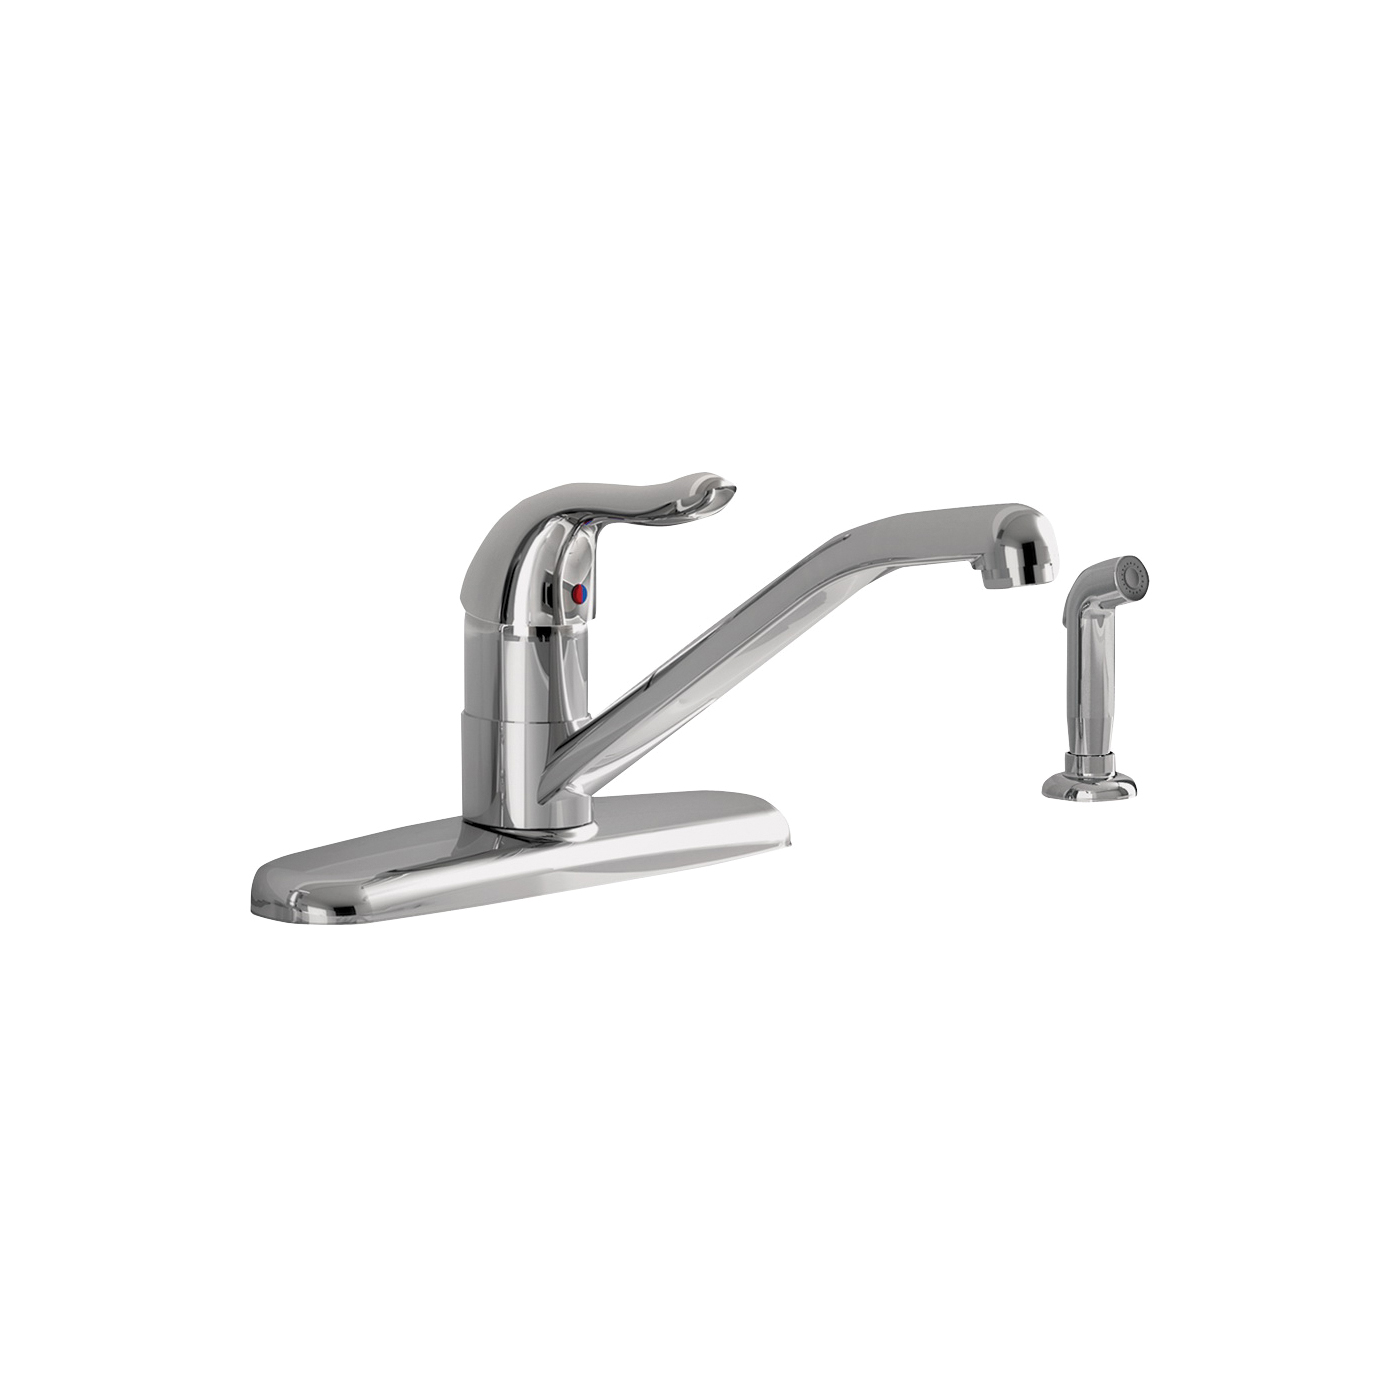 Picture of American Standard Jocelyn 9316.001.002 Kitchen Faucet with Side Spray, 1.8 gpm, 1-Faucet Handle, Brass